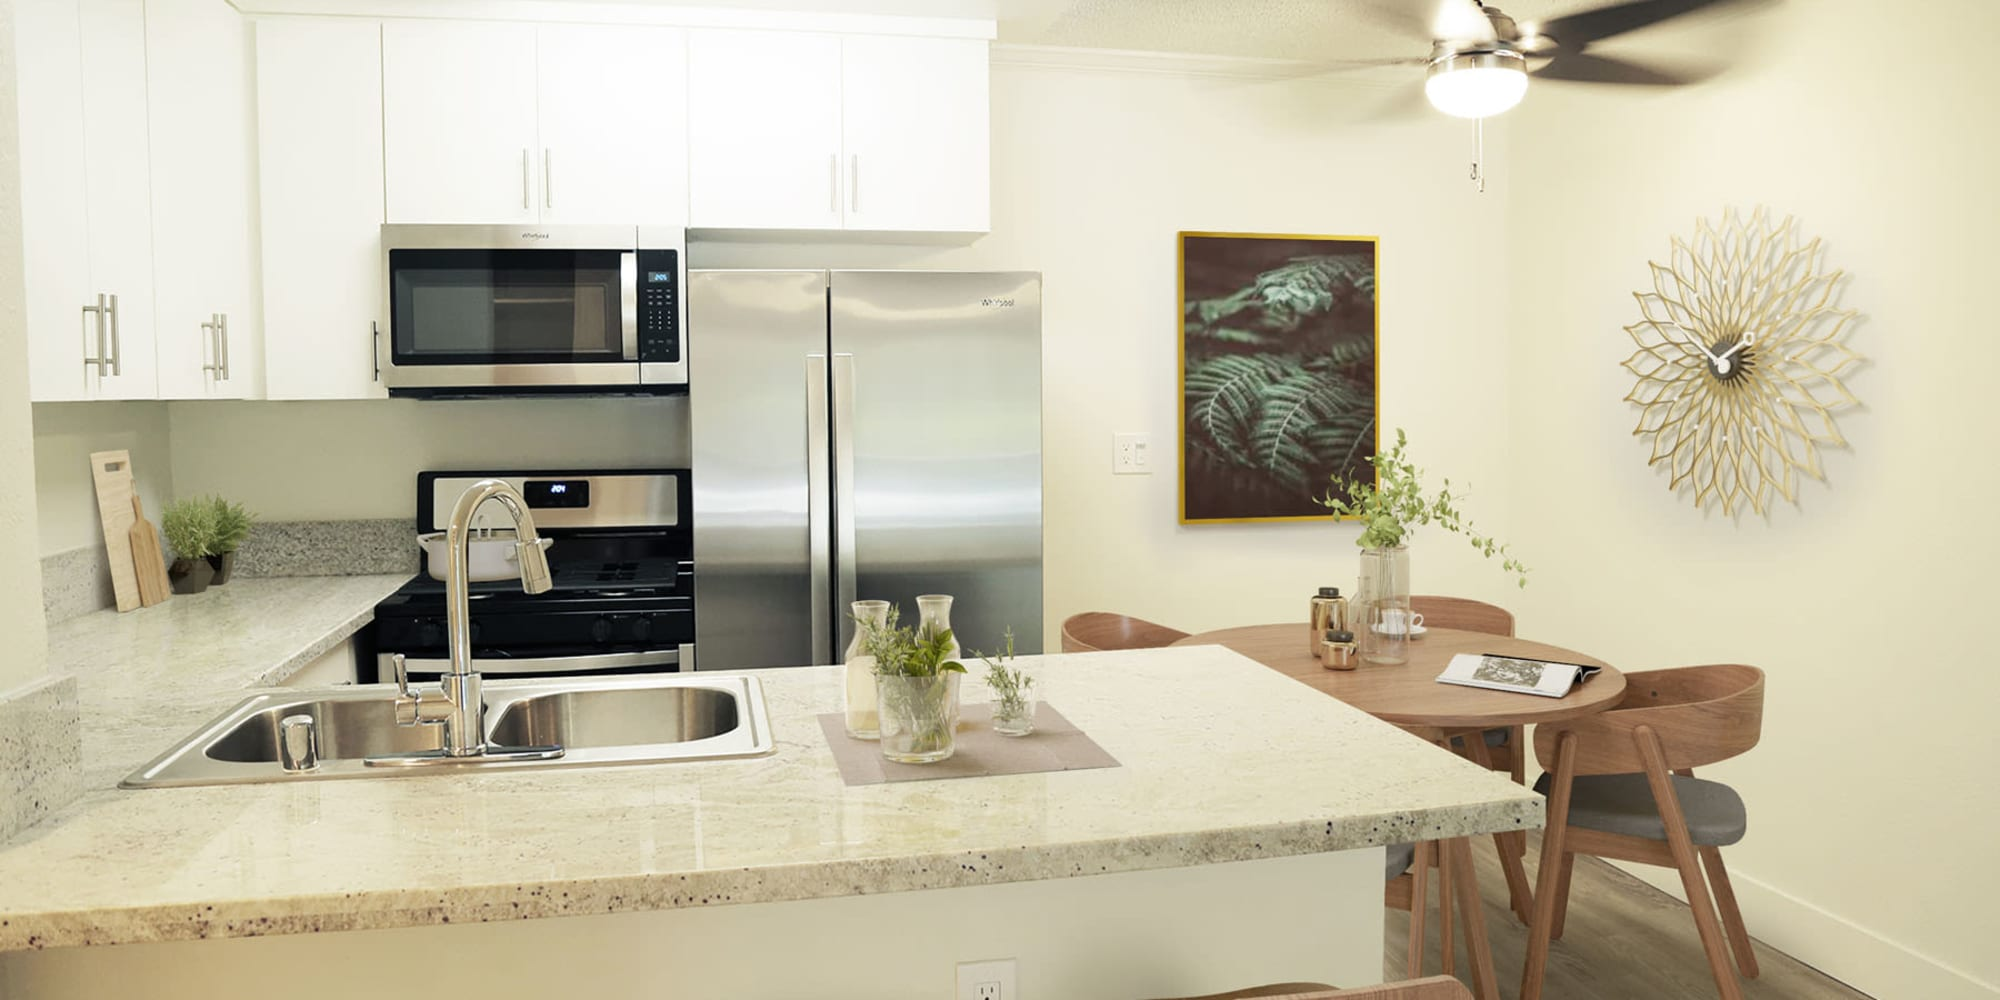 Stainless-steel appliances and granite countertops in a model home's kitchen at Casa Granada in Los Angeles, California